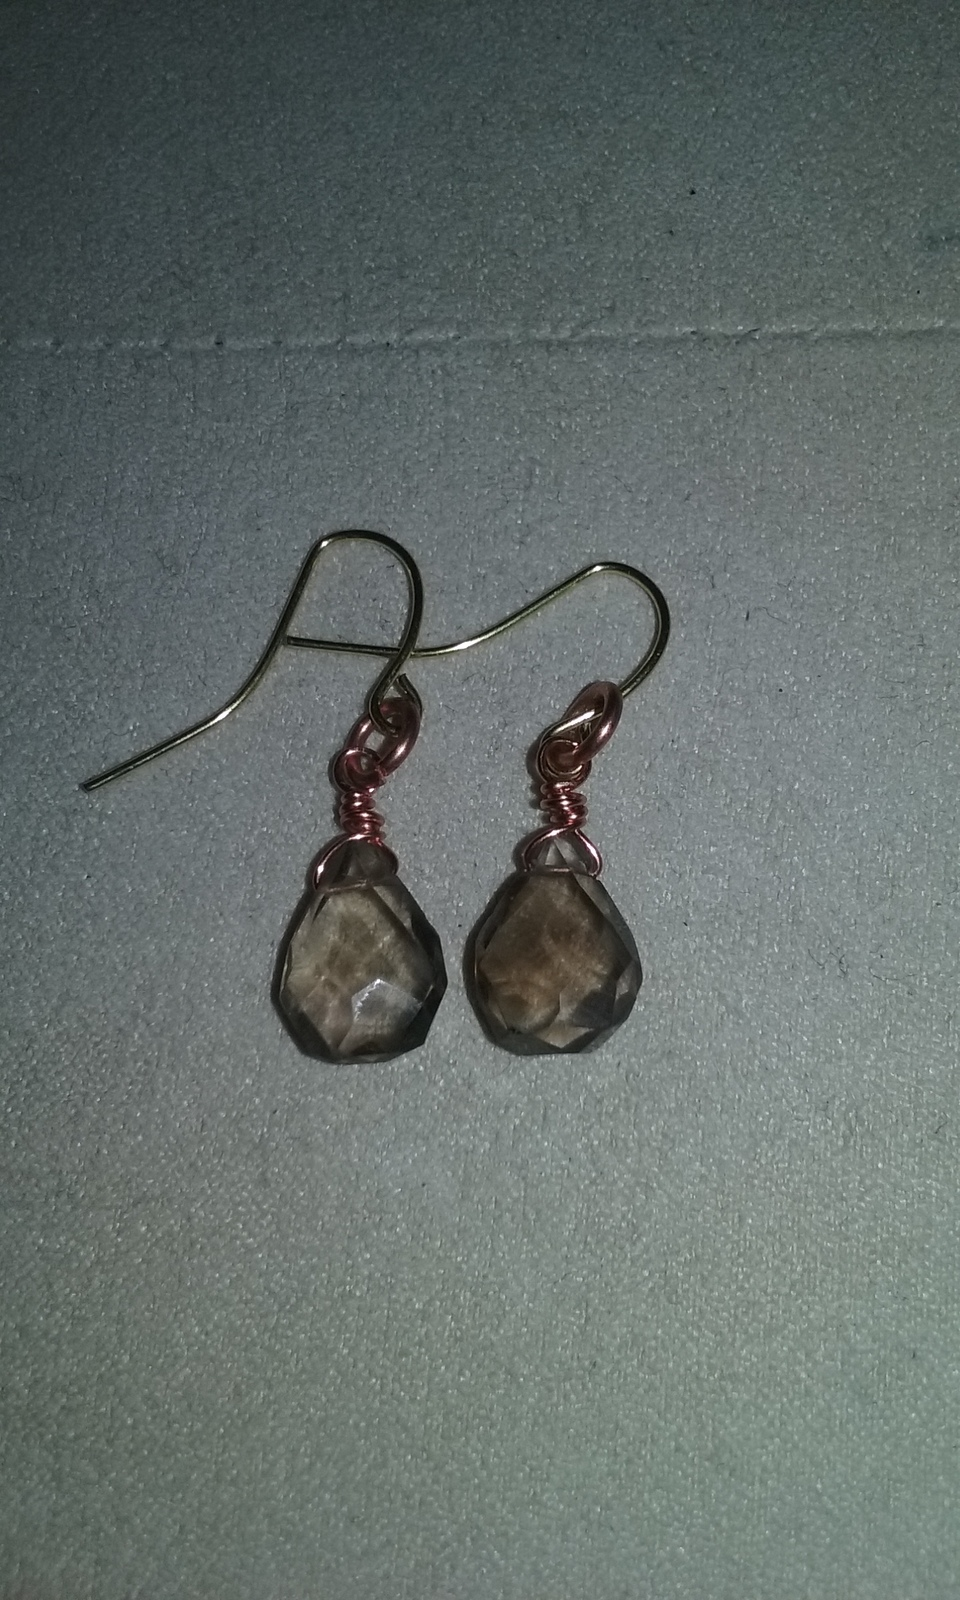 Artisan Handmade Genuine Smoky Quartz Gemstone Wire Wrap Gold Plated Earrings